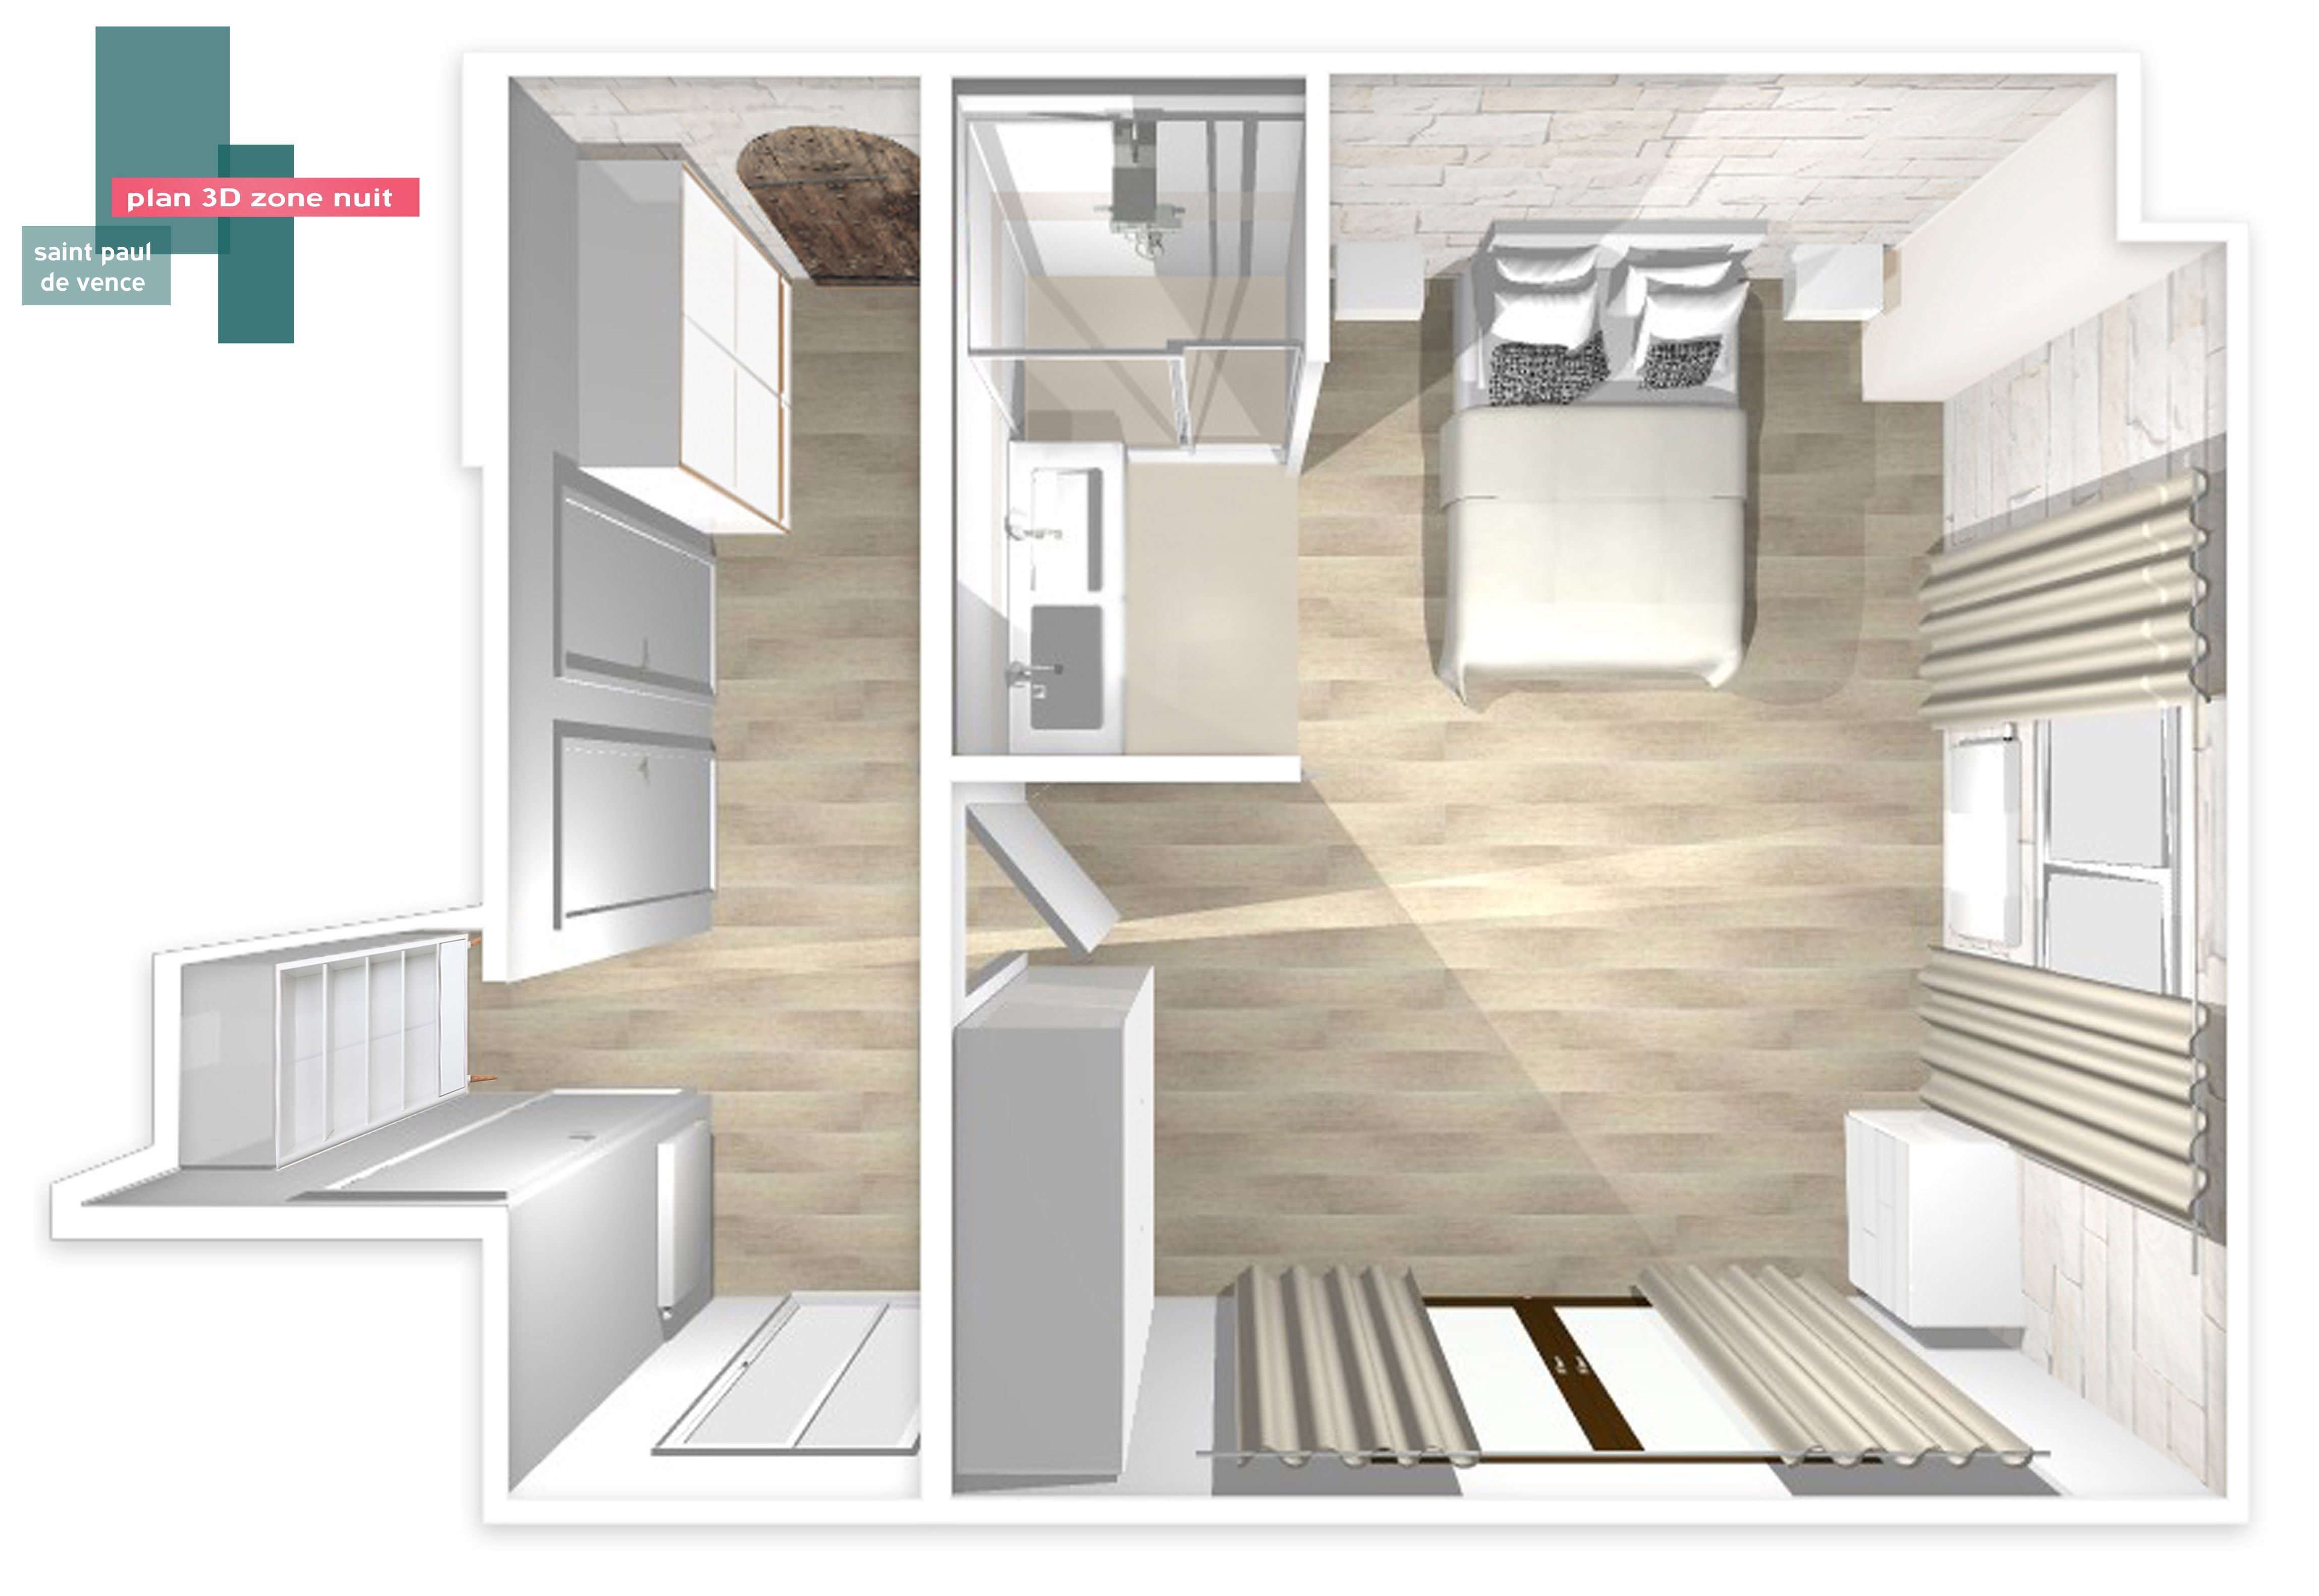 Plan 3d suite parentale b indoor http www b indoor for Deco chambre parentale